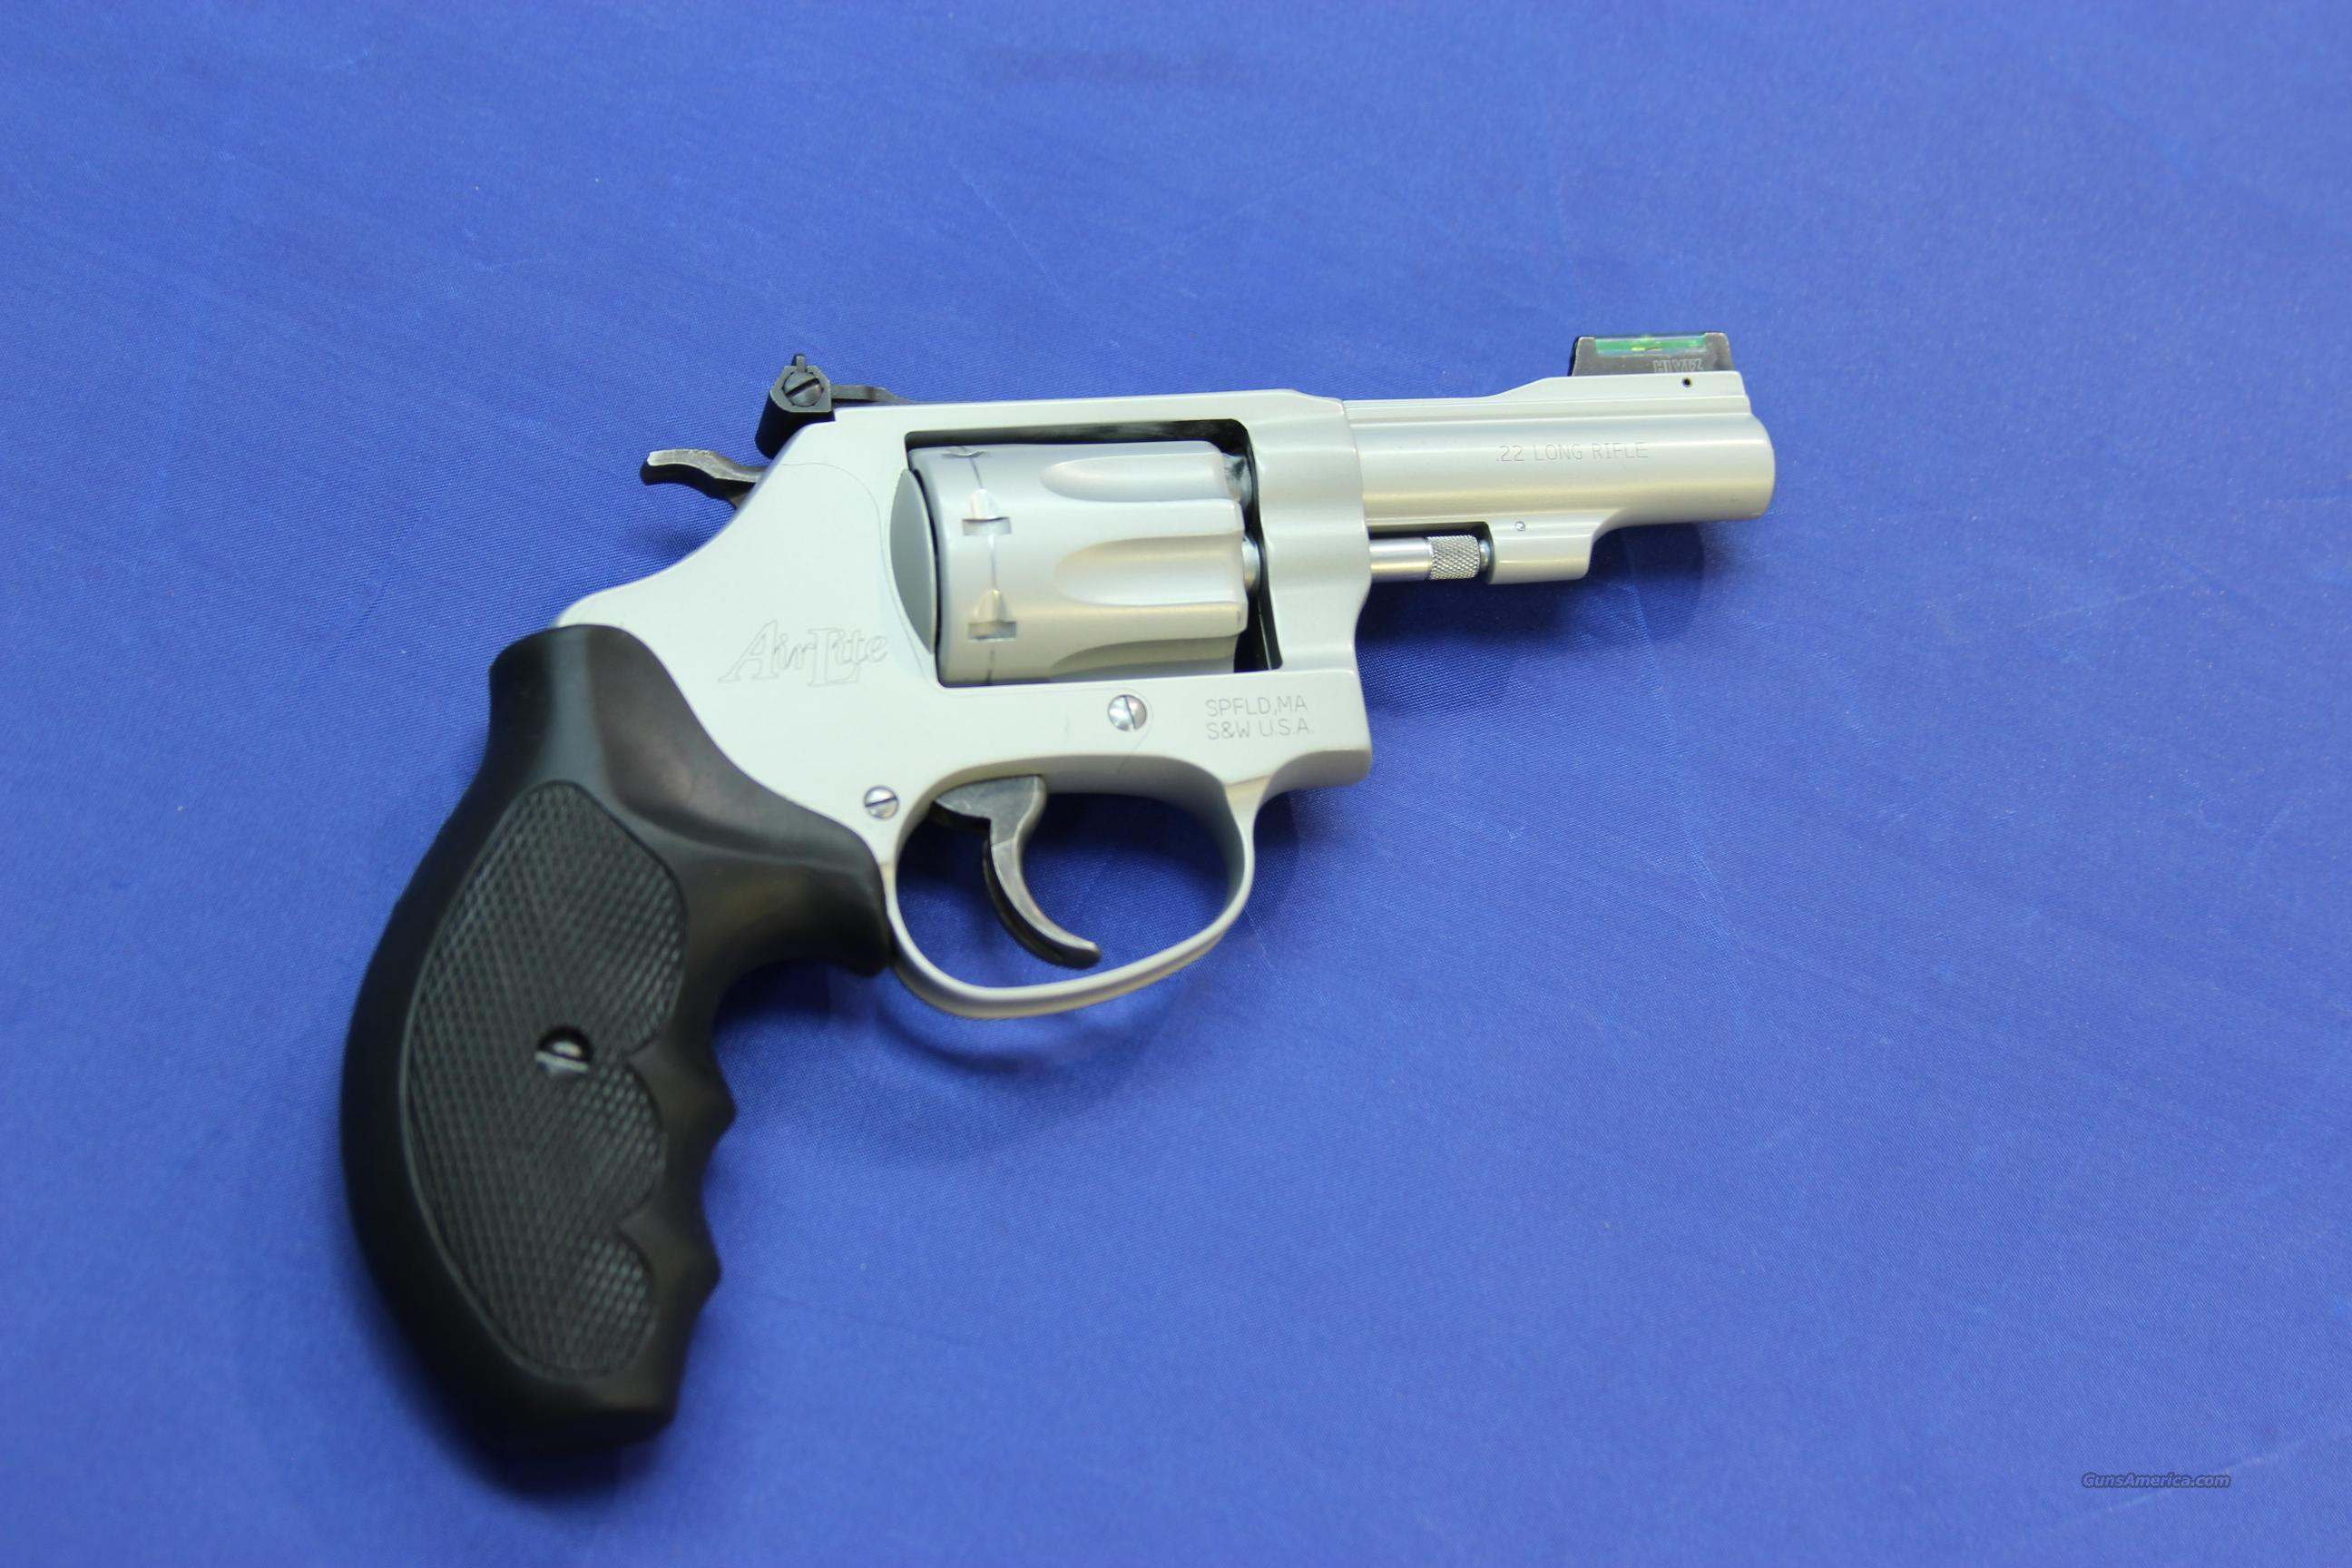 SMITH & WESSON 317-3 AIRWEIGHT .22 LR - EXCELLENT CONDITION w/ BOX  Guns > Pistols > Smith & Wesson Revolvers > Pocket Pistols